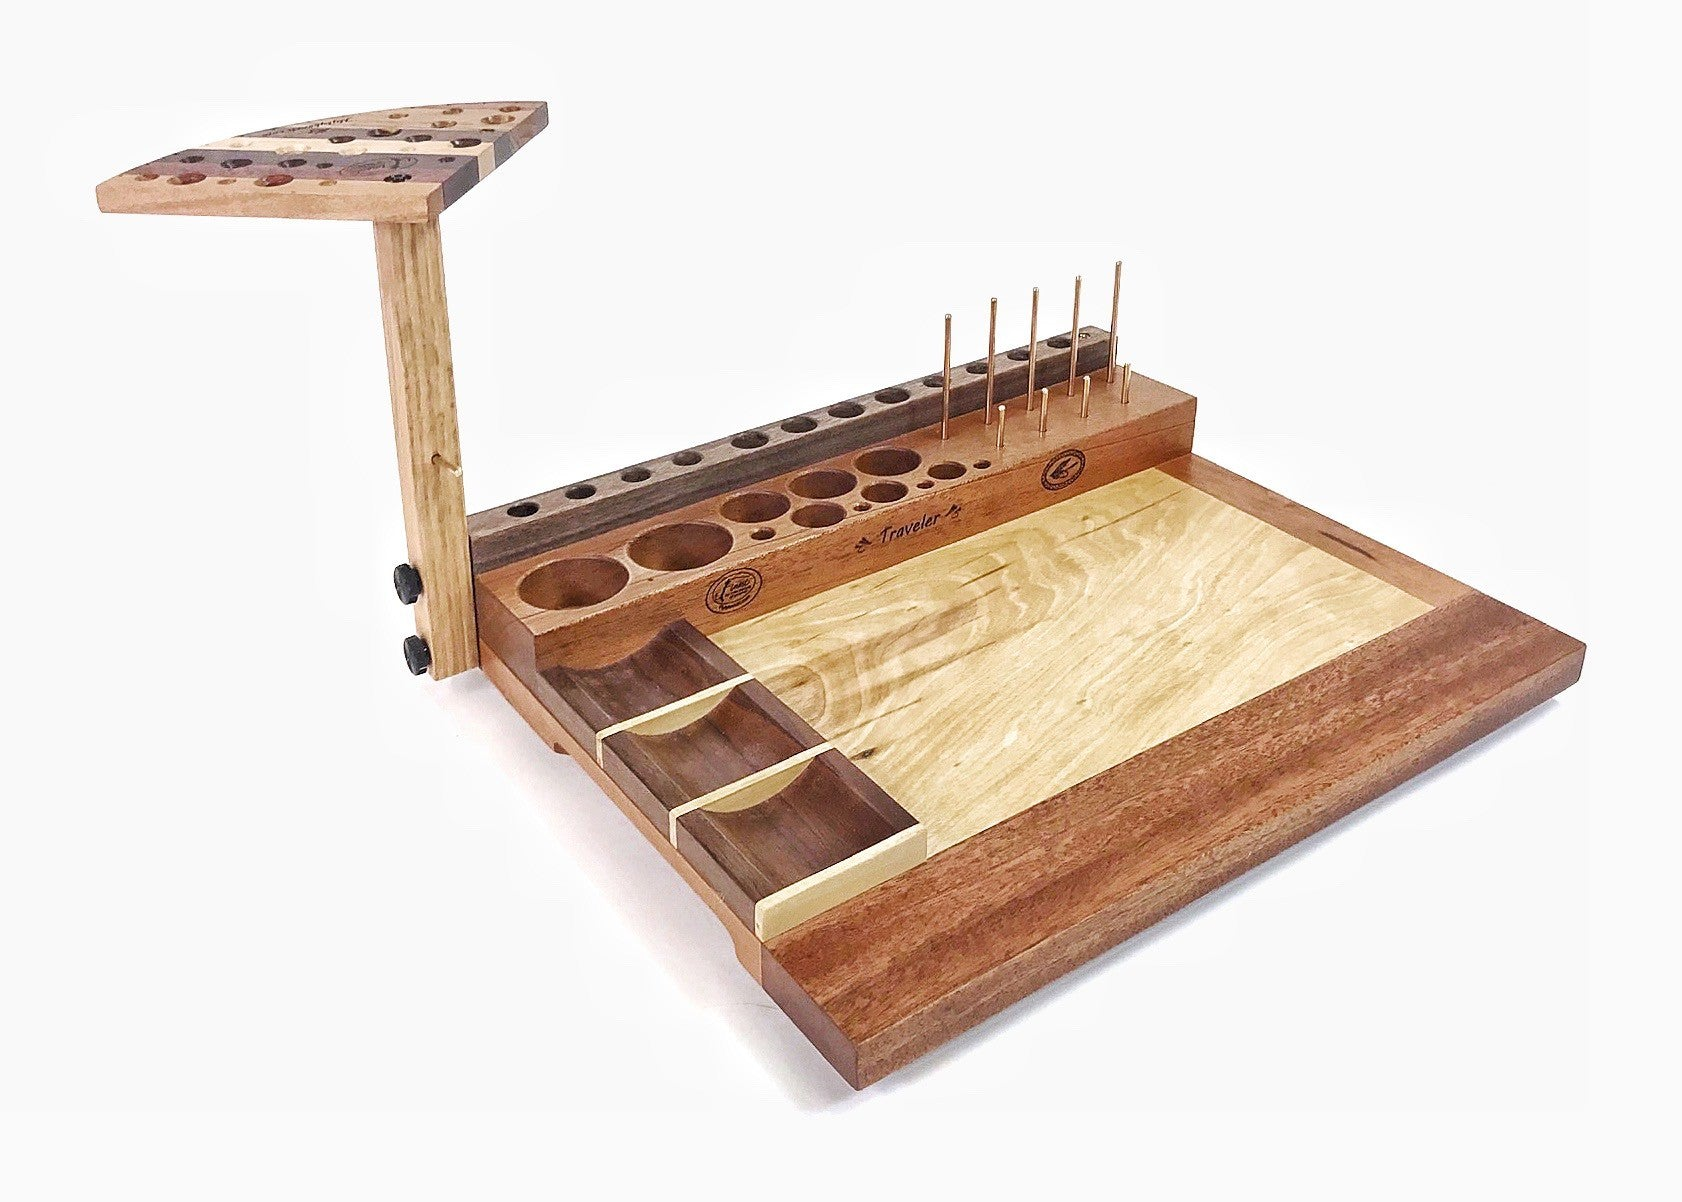 The Traveler fly tying bench is a great beginner bench. The fly tying bench in the photo is a left handed version. With the right side open, it makes pulling material into your hand easy.